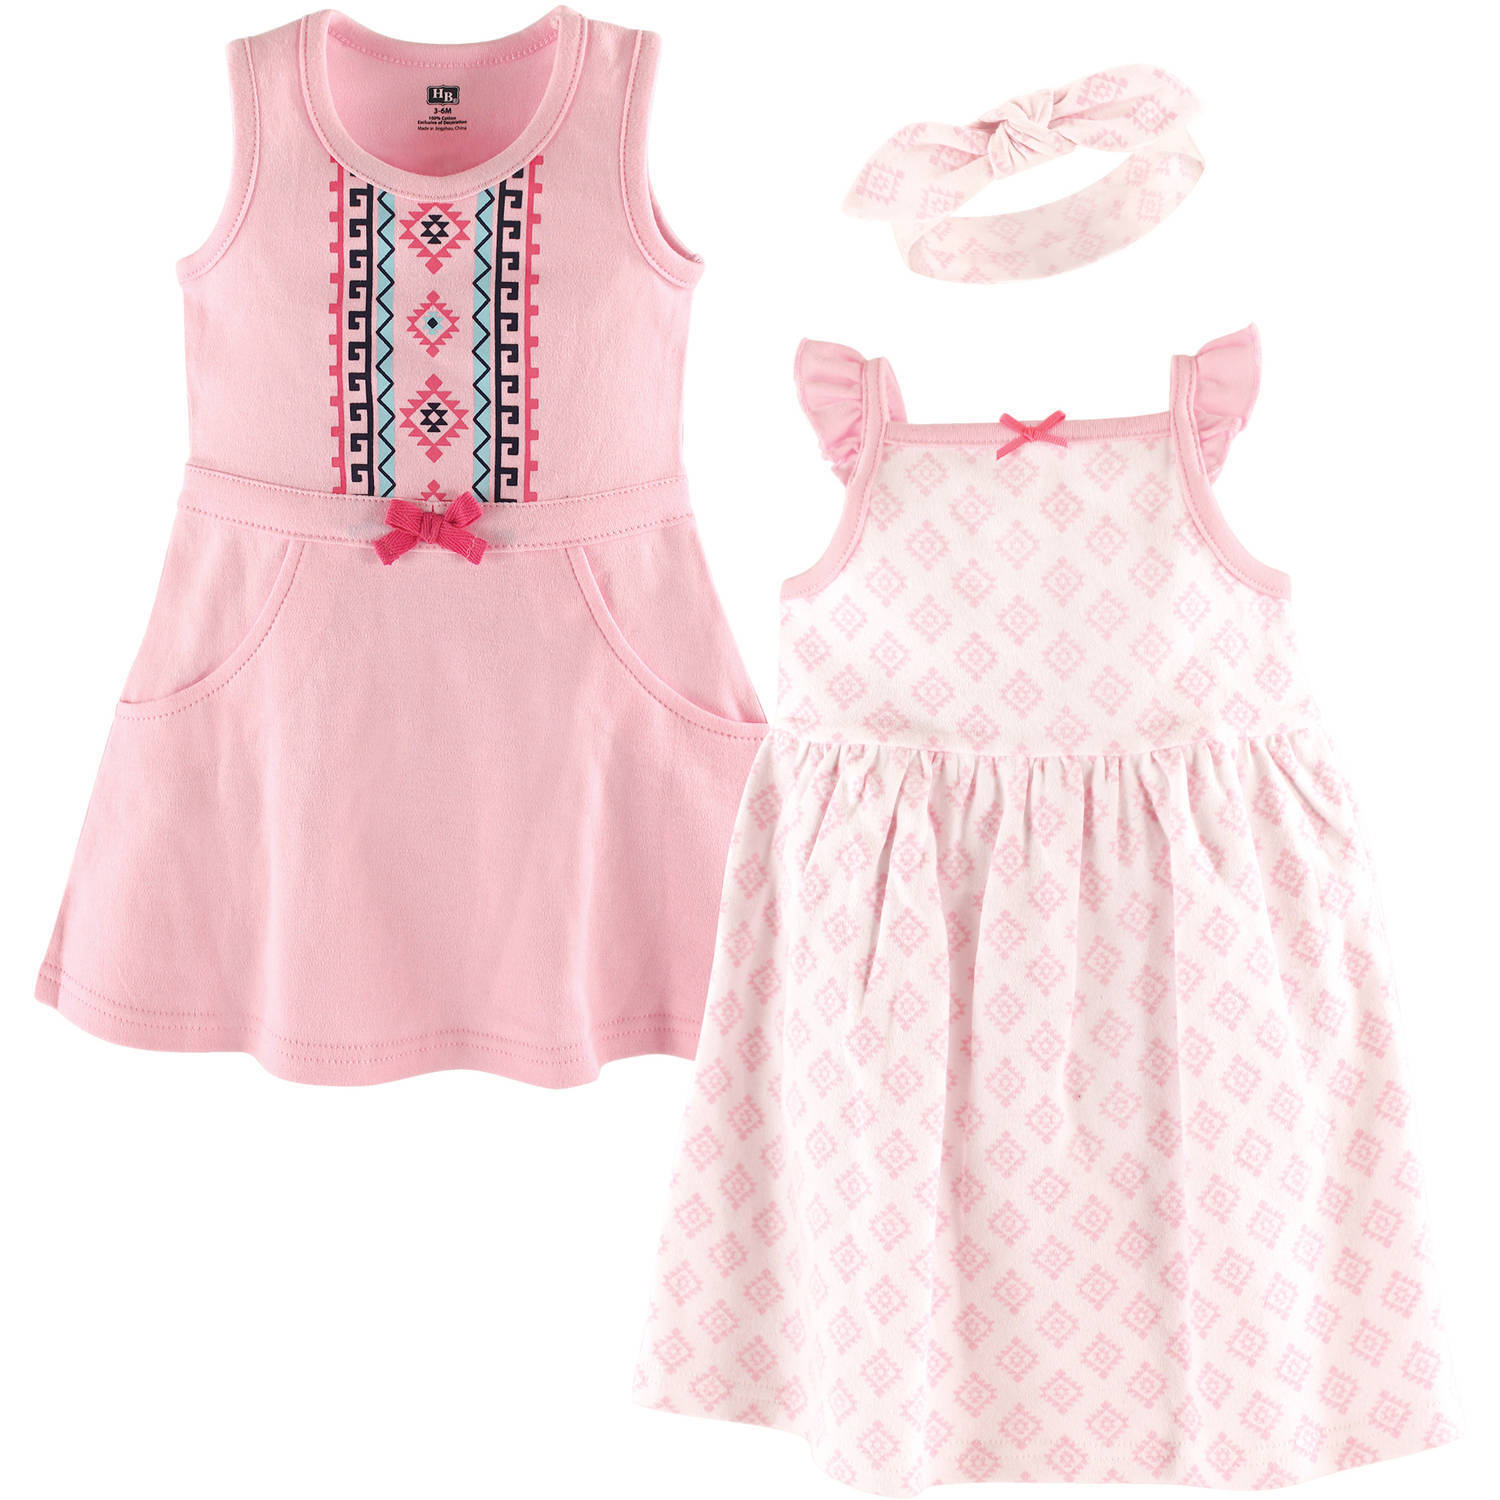 HUDSON BABY GIRLS 3 PIECE SLEEVELESS DRESS AND HEADBAND SET